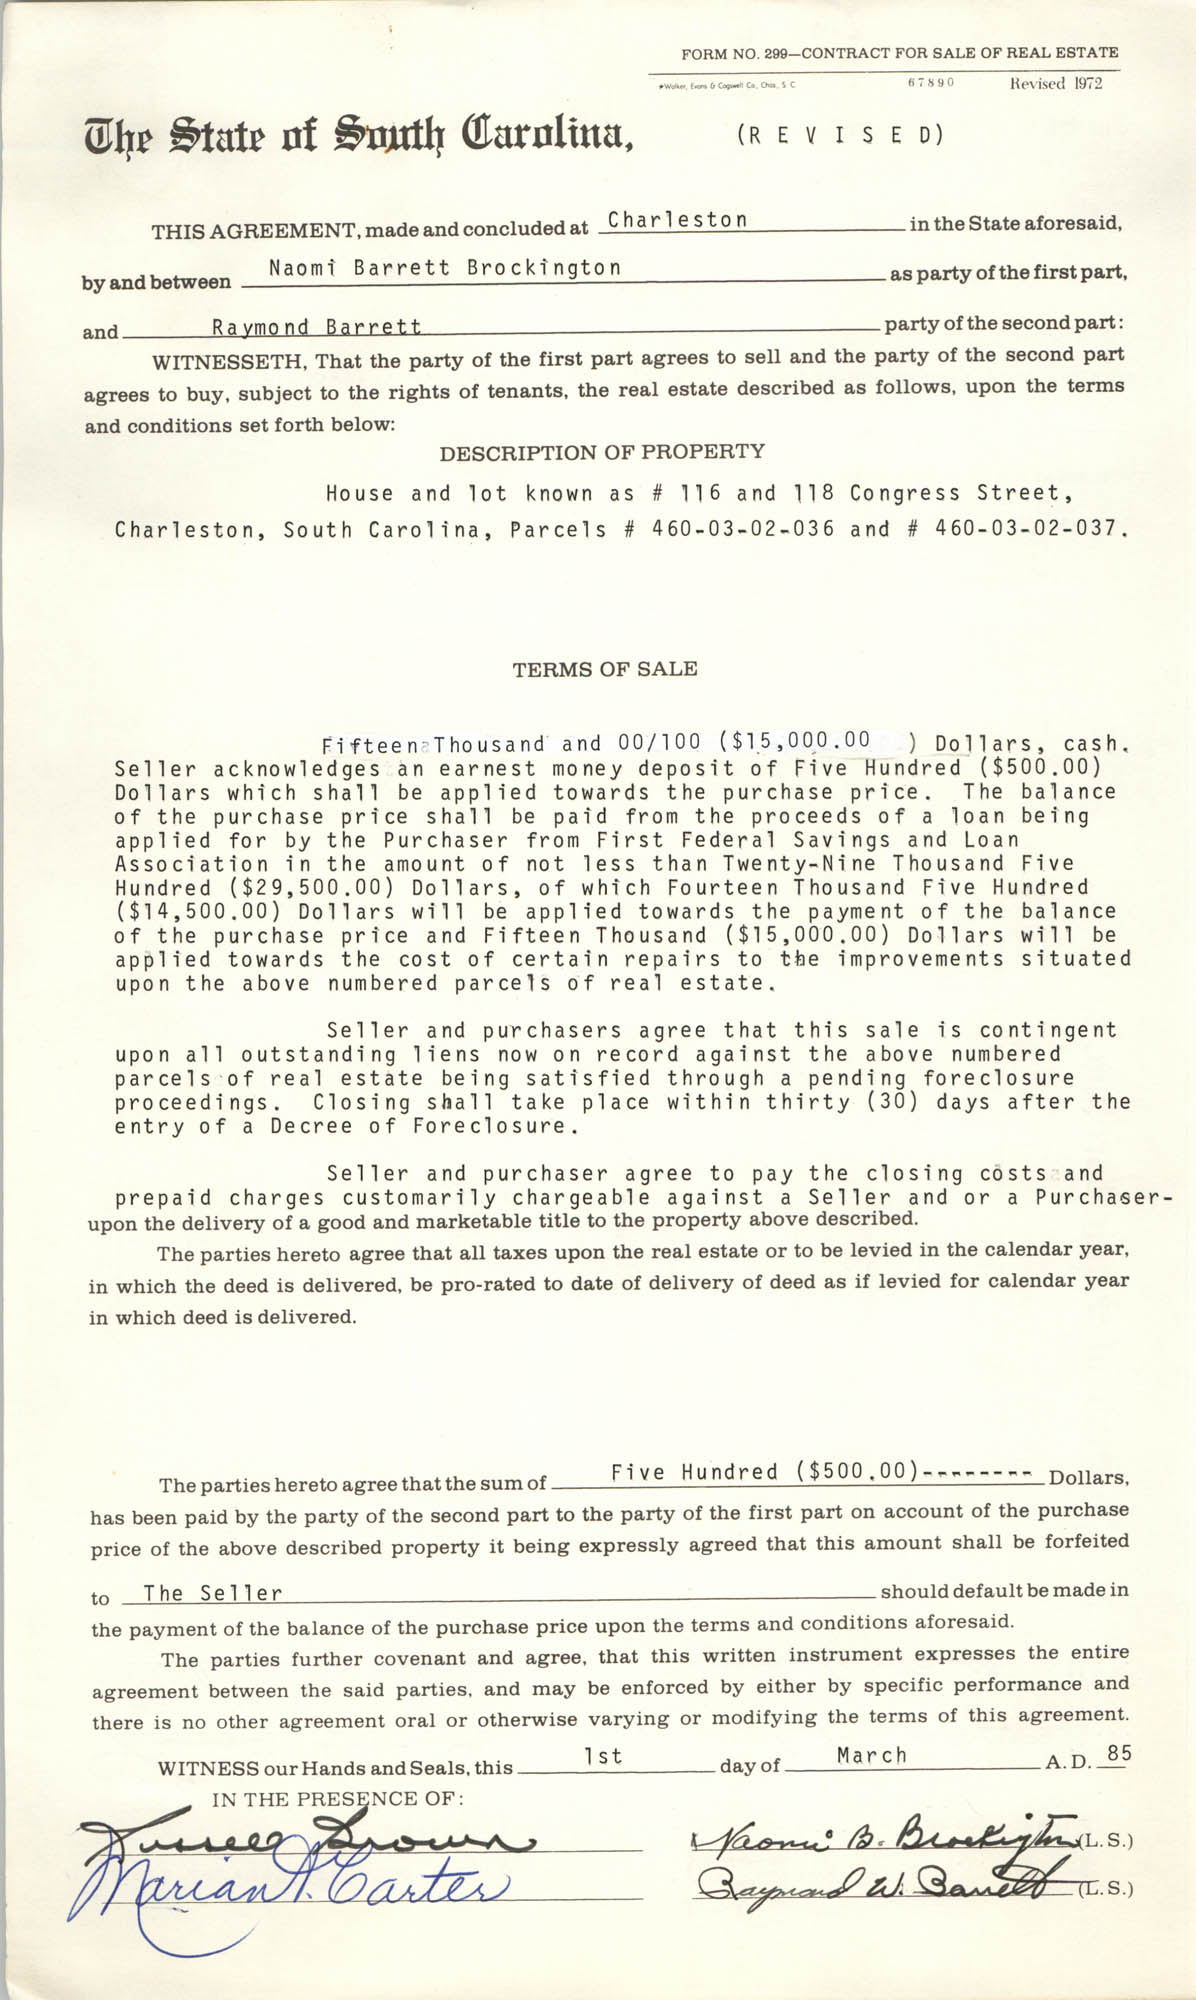 Contract for Sale of Real Estate, State of South Carolina, Naomi Barrett Brockington and Raymond Barrett, March 1, 1985